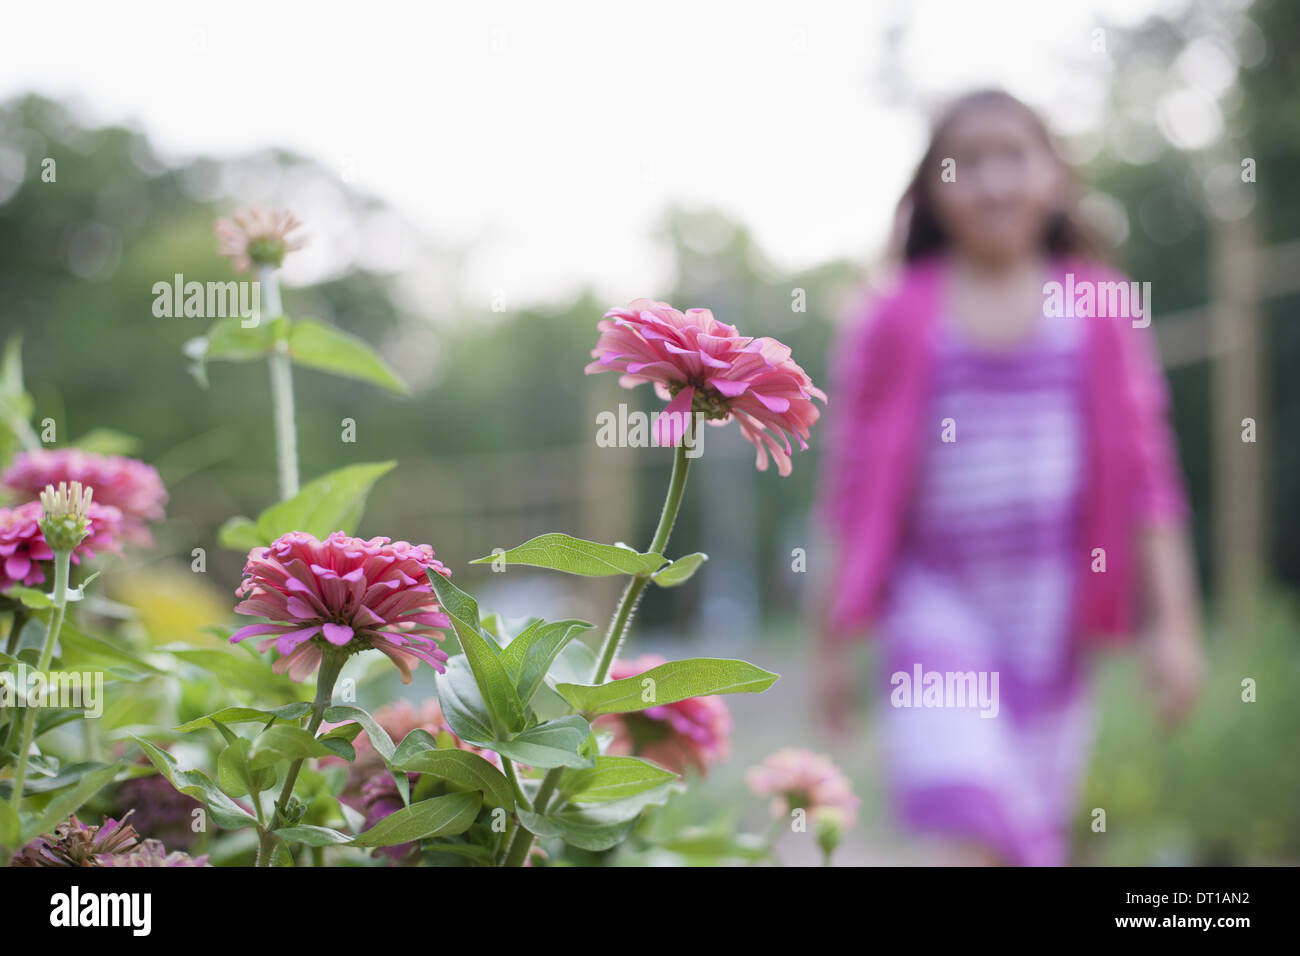 Woodstock New York USA young girl pink dress walking past bed of flowers - Stock Image